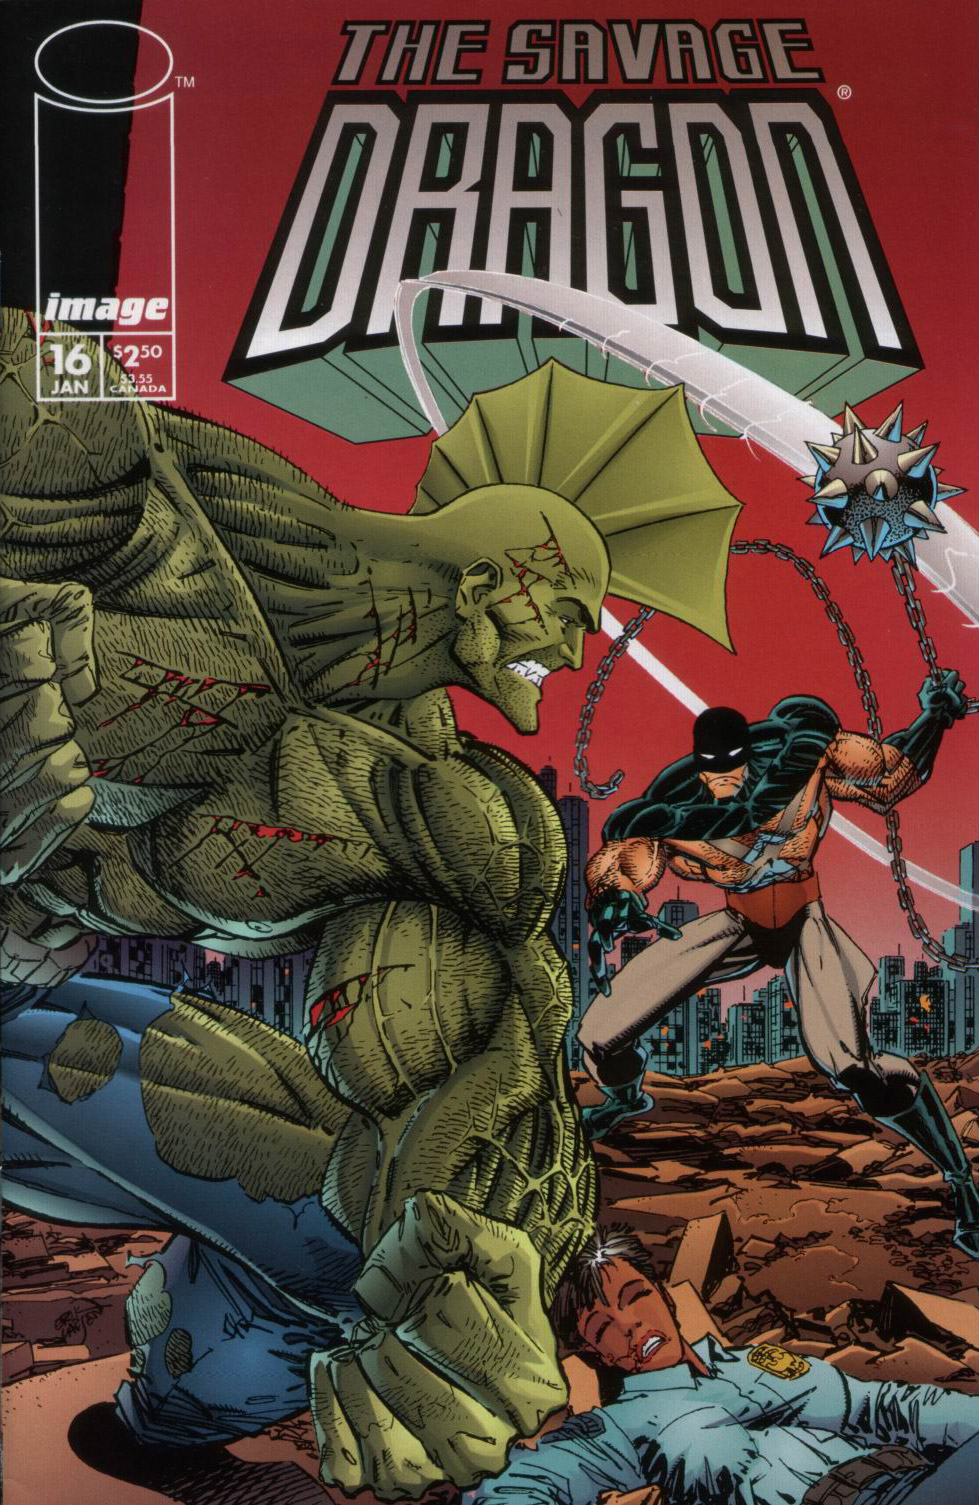 Cover Savage Dragon Vol.2 #16